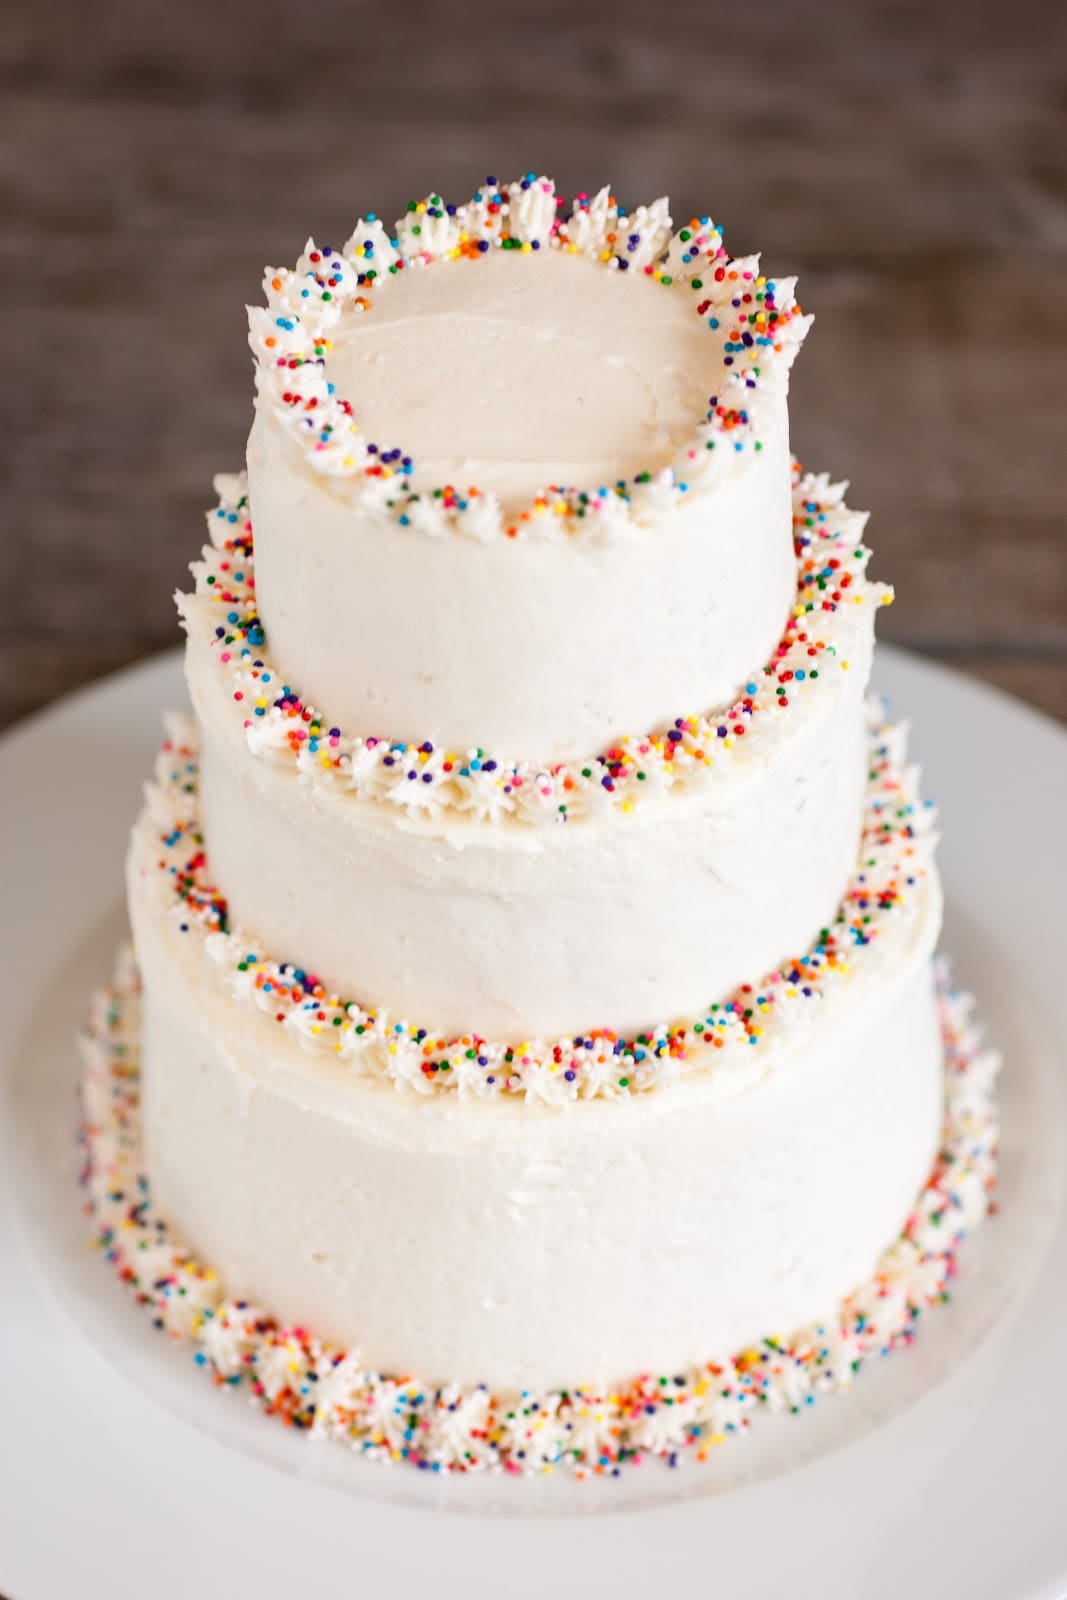 Cake With Icing In It : Vanilla Buttercream Frosting - Cooking Classy